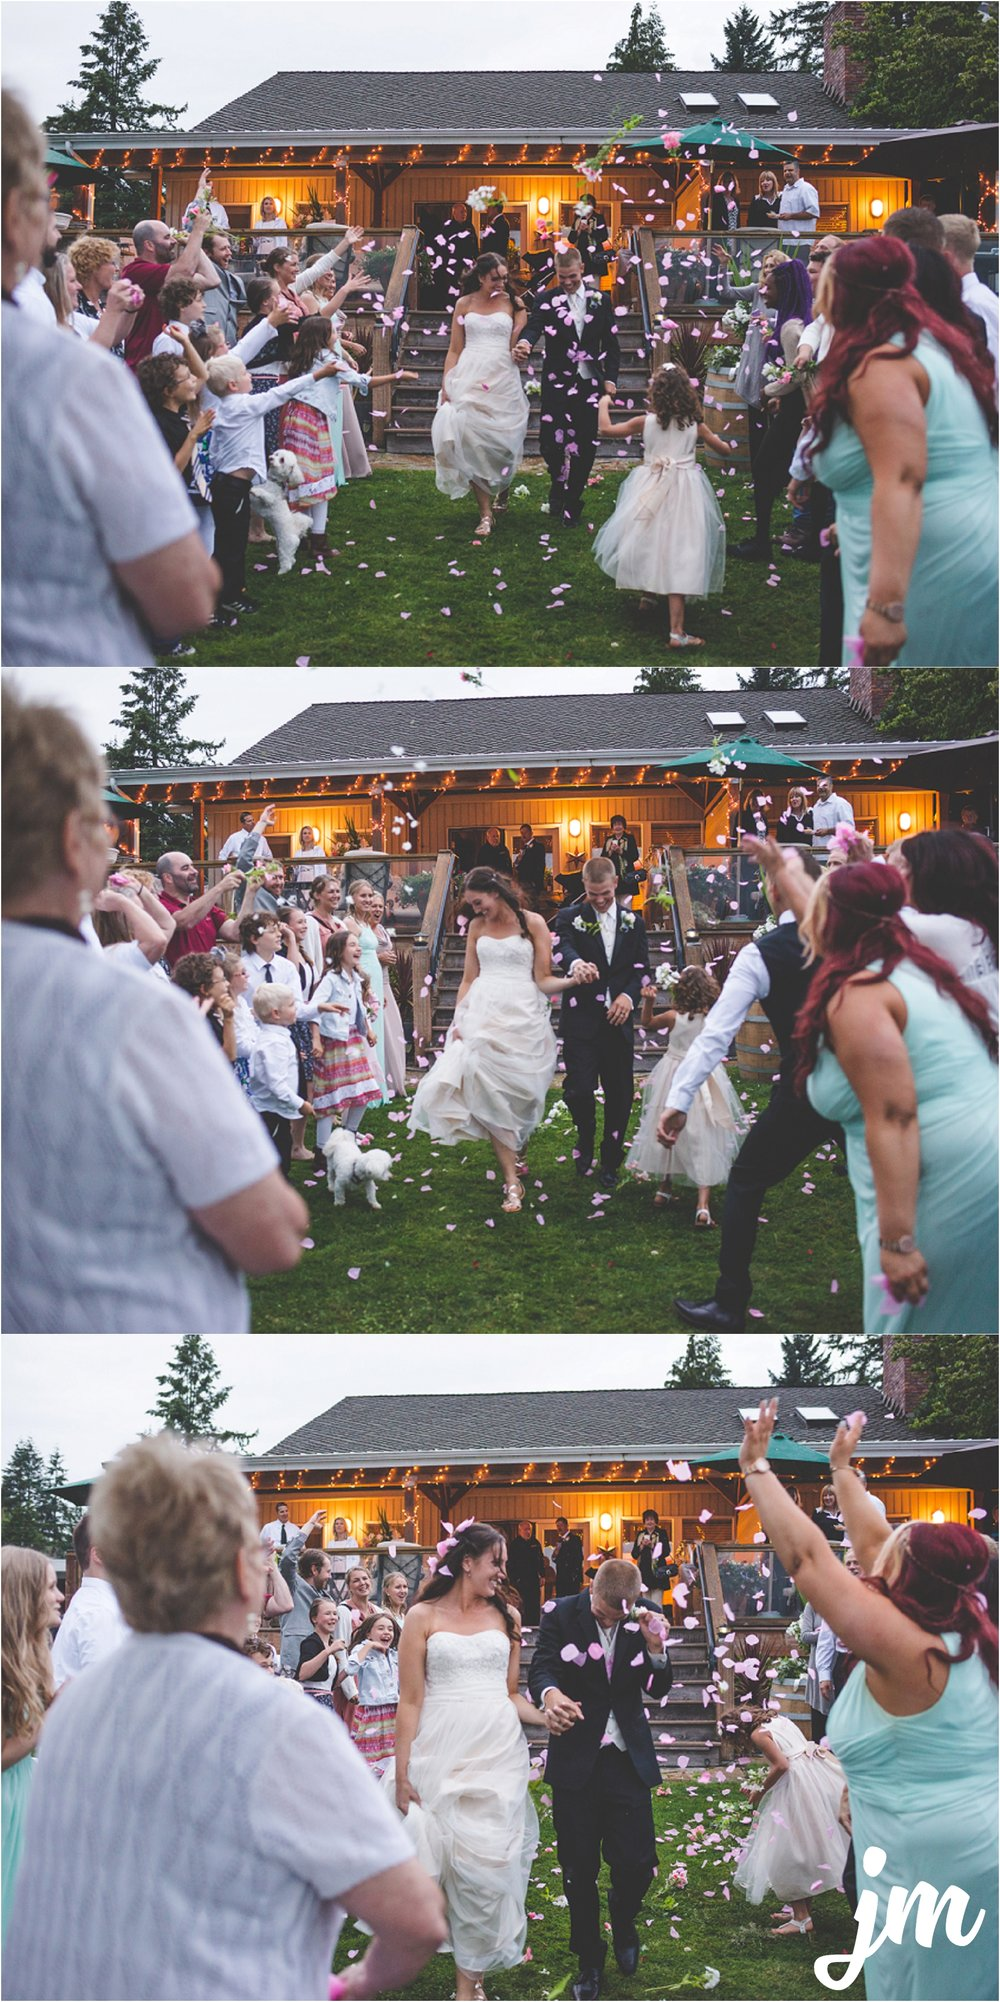 jannicka-mayte-intimate-backyard-lake-wedding-kent-wa-pacific-northwest-wedding-photographer_0067.jpg